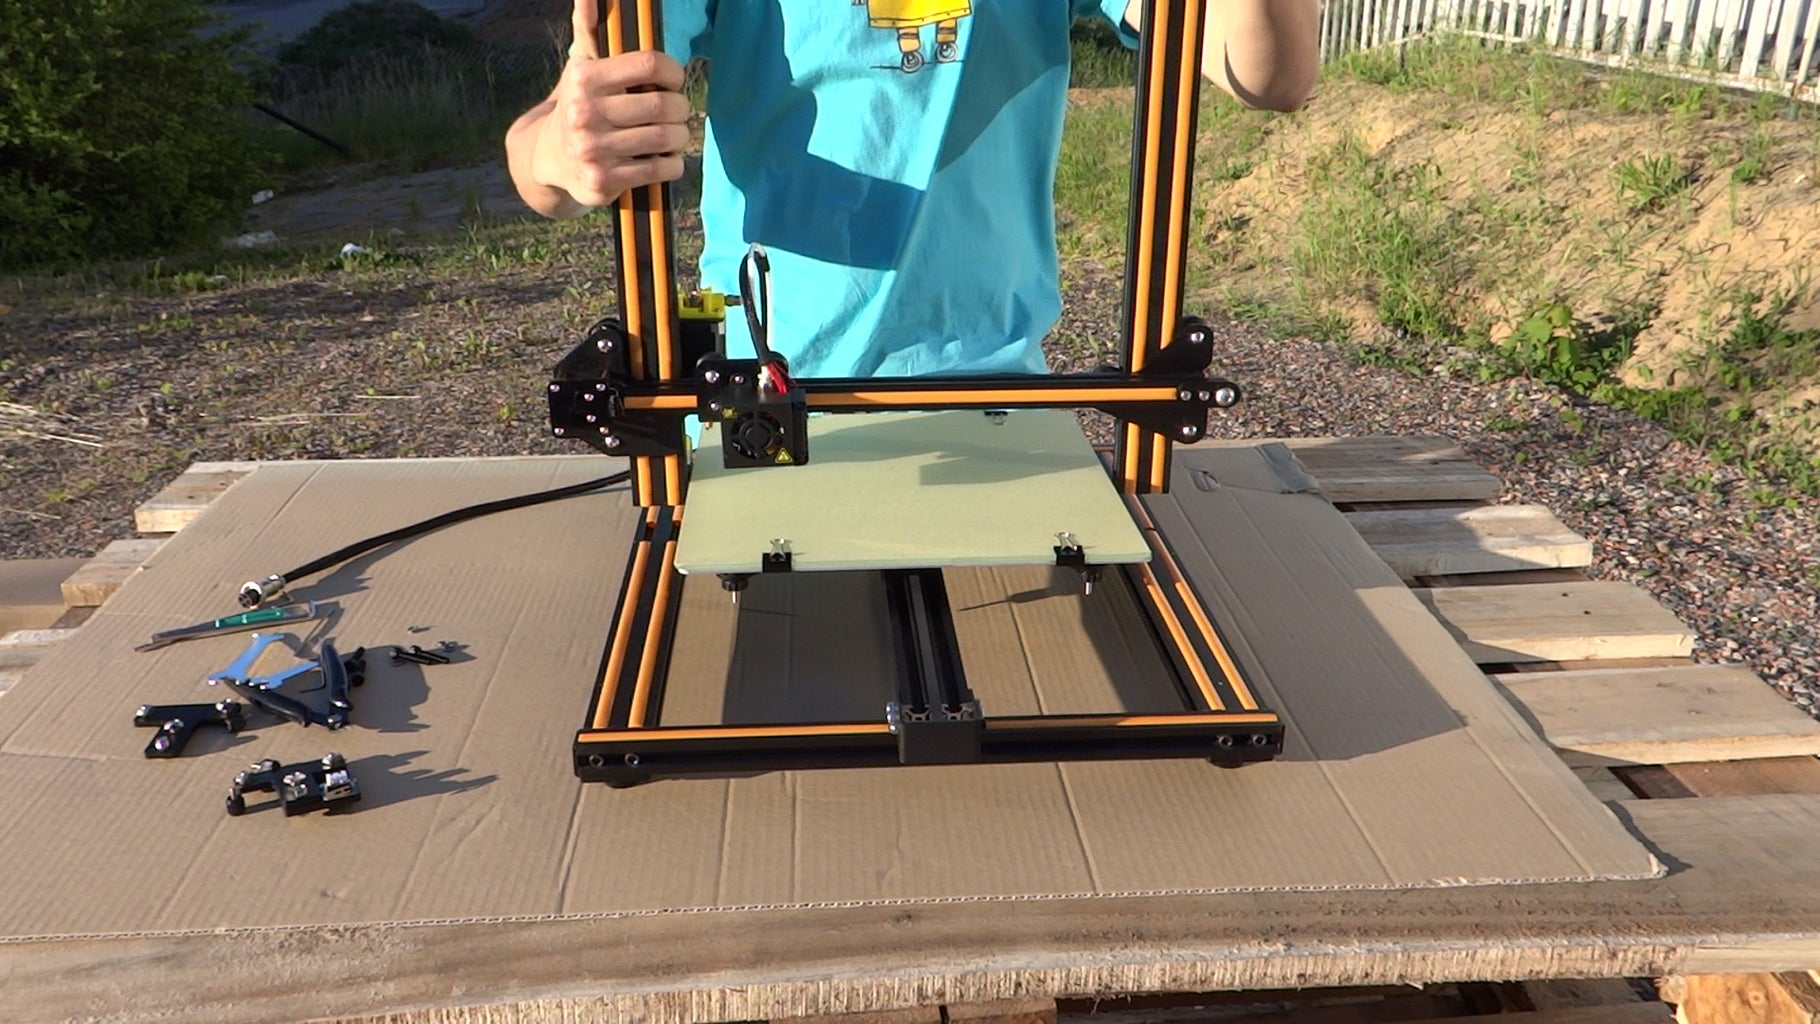 Connect Bottom With Top of the Printer